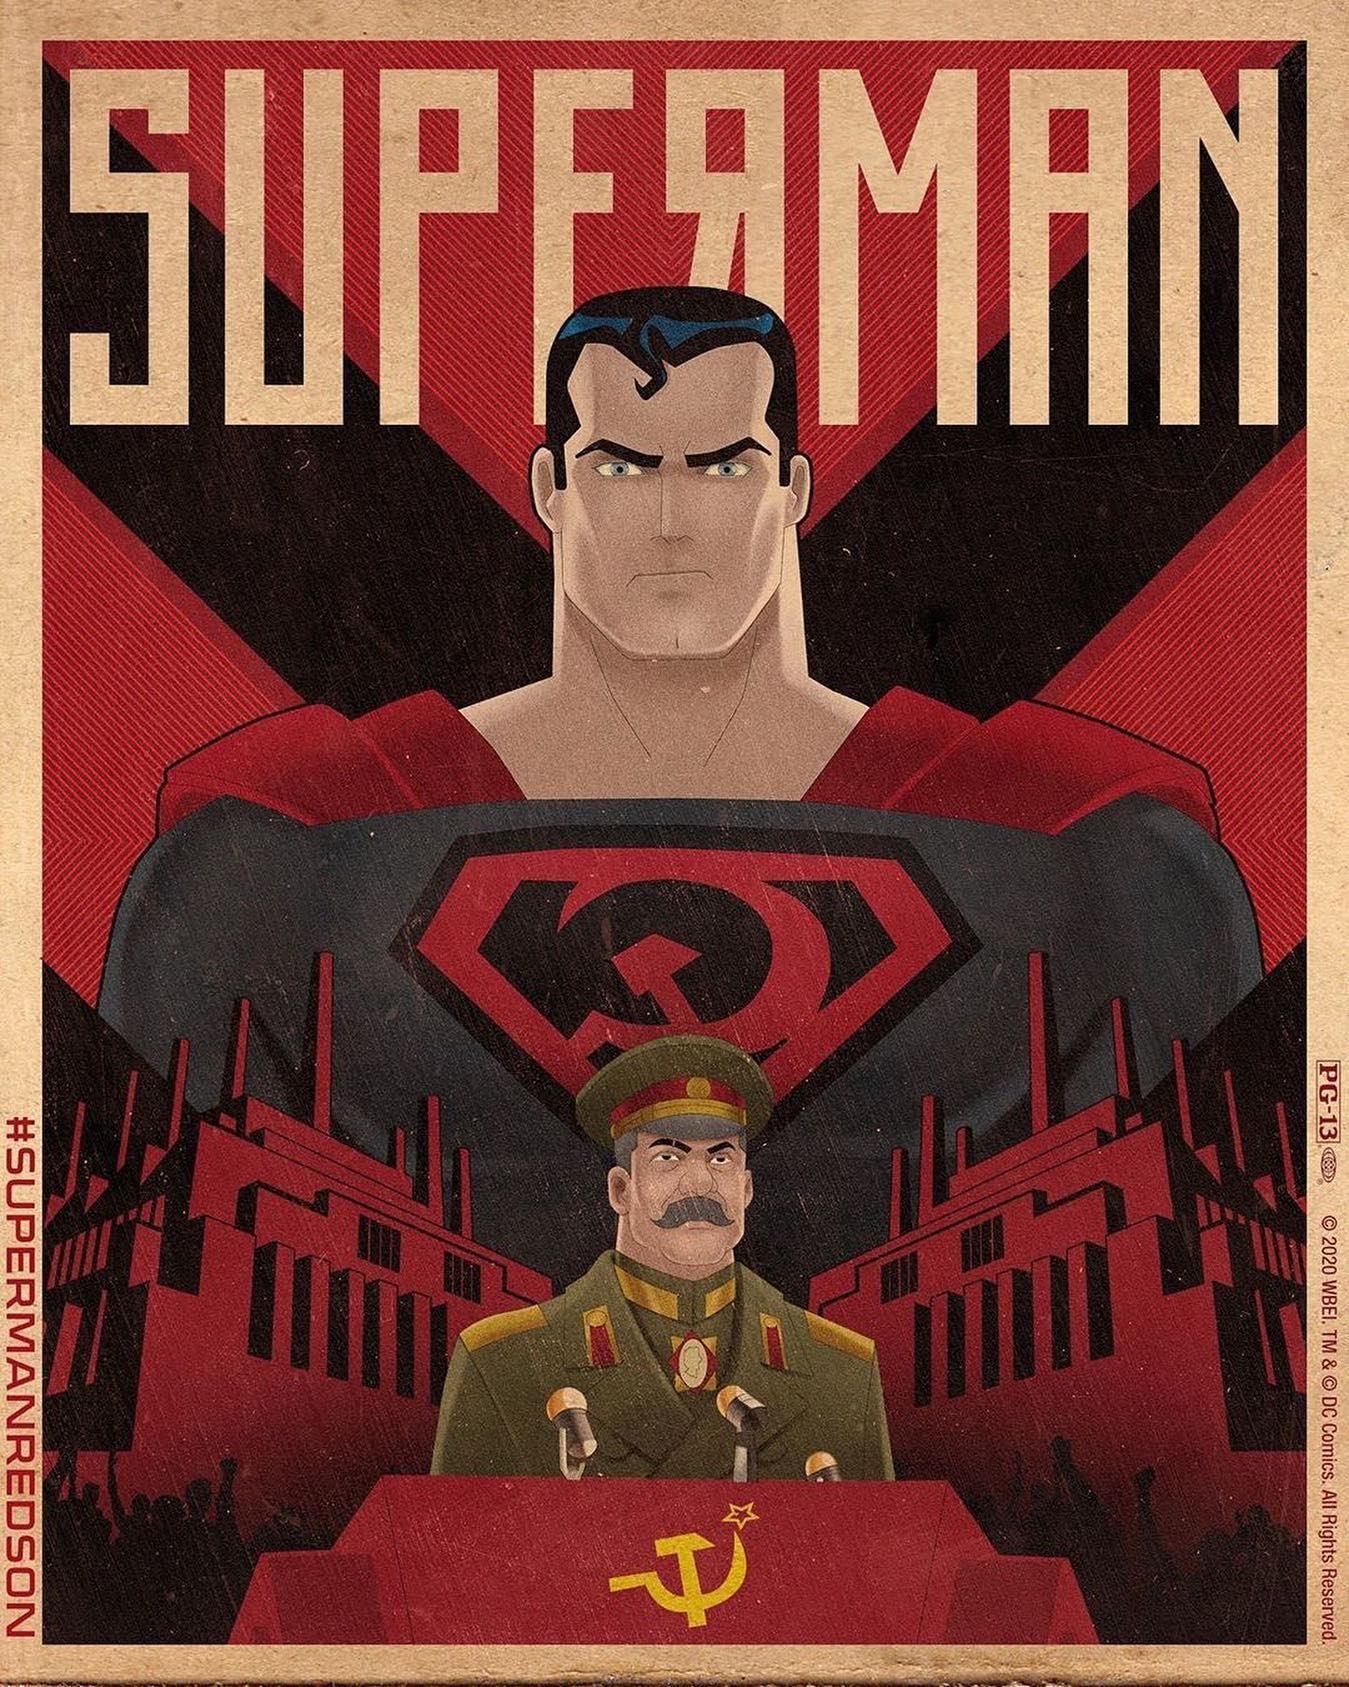 Soviet Superman and Stalin in Red Son Comic Book ⠀ Redson